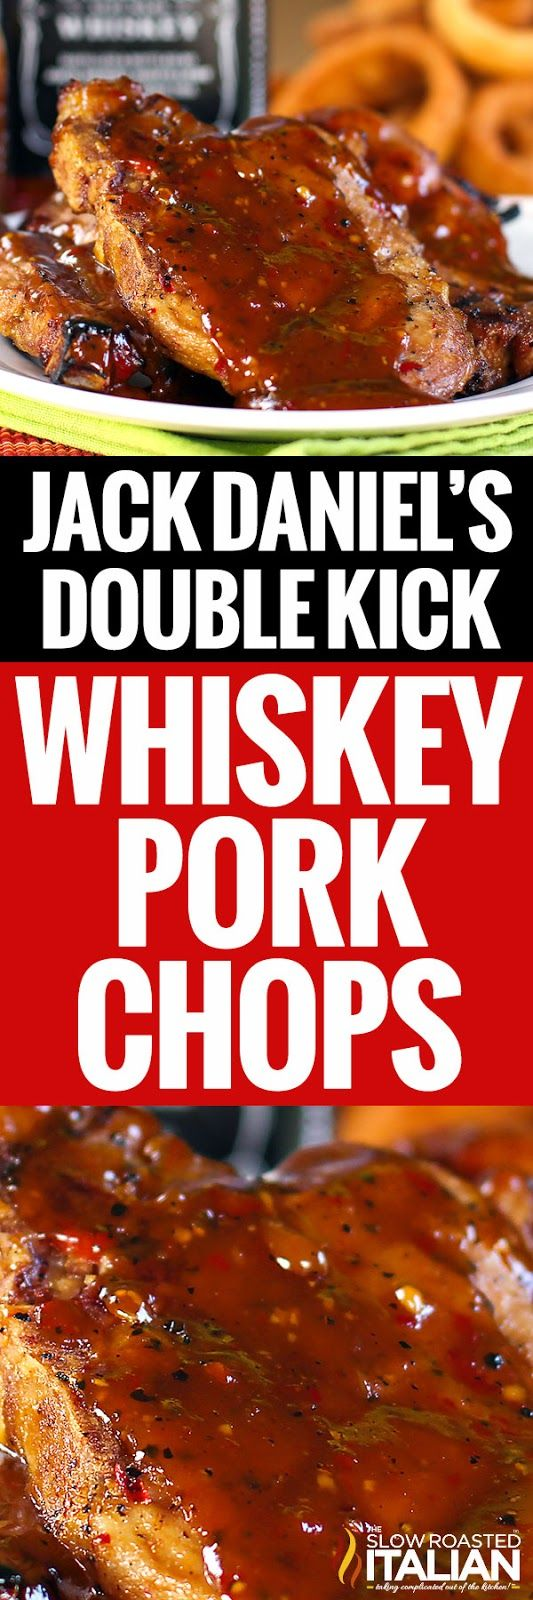 Jack Daniels Double Kick Pork Chops are marinated in a fabulous mixture of Jack and spices.  The spices give these pork chops a little heat, but the Jack Daniels adds such an amazing flavor that you really have to try this recipe!